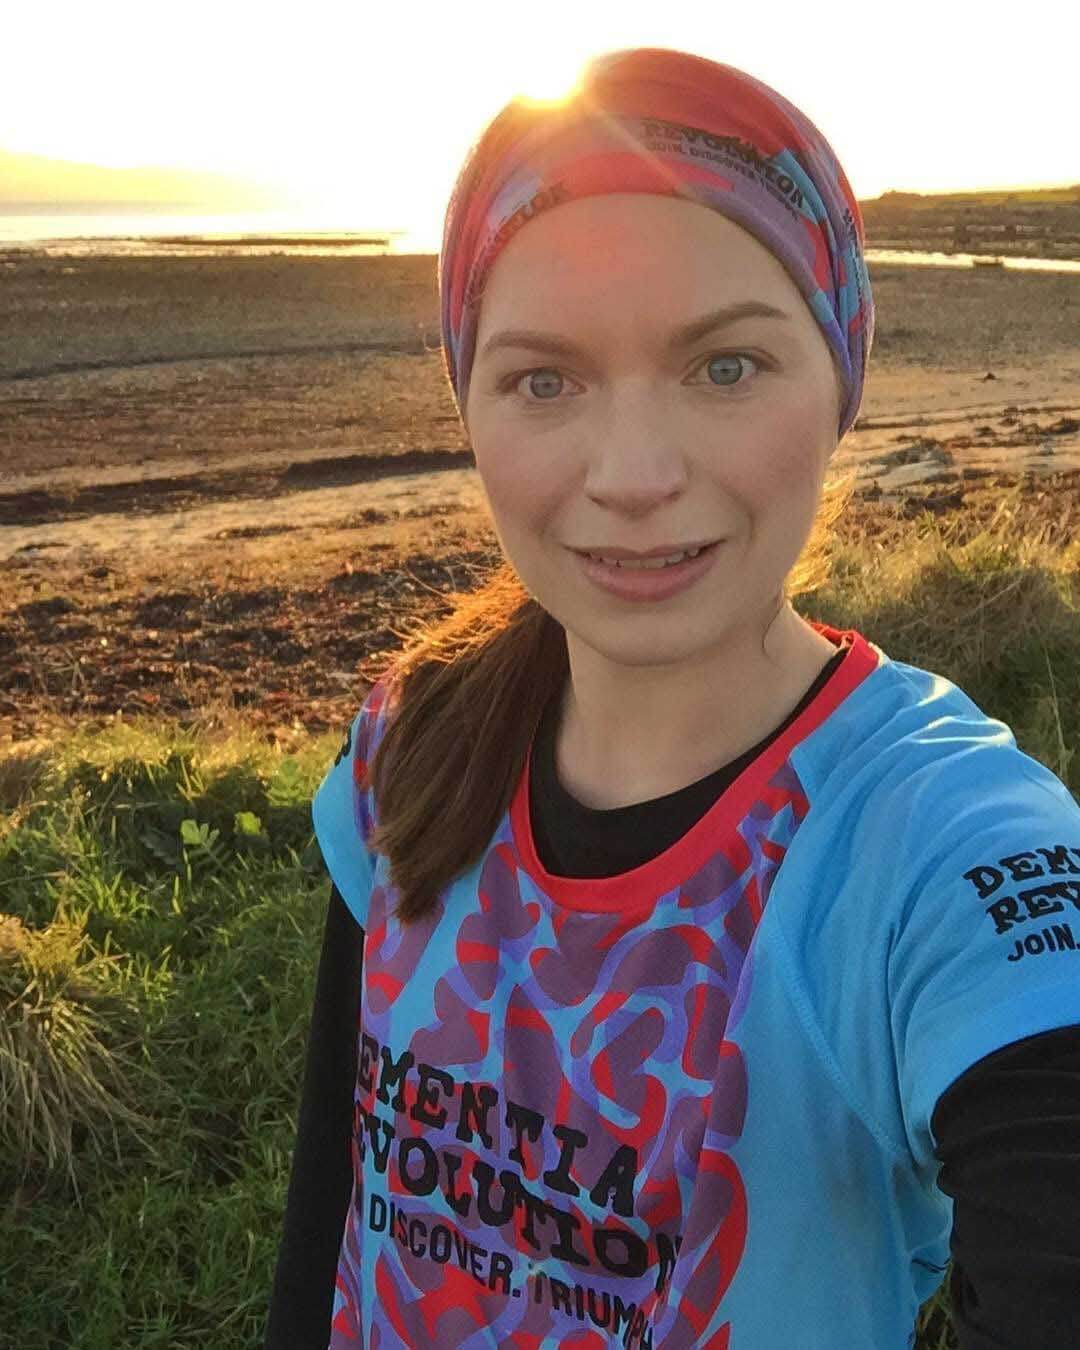 HOKA fan Louisa readies herself for the 2019 London Marathon